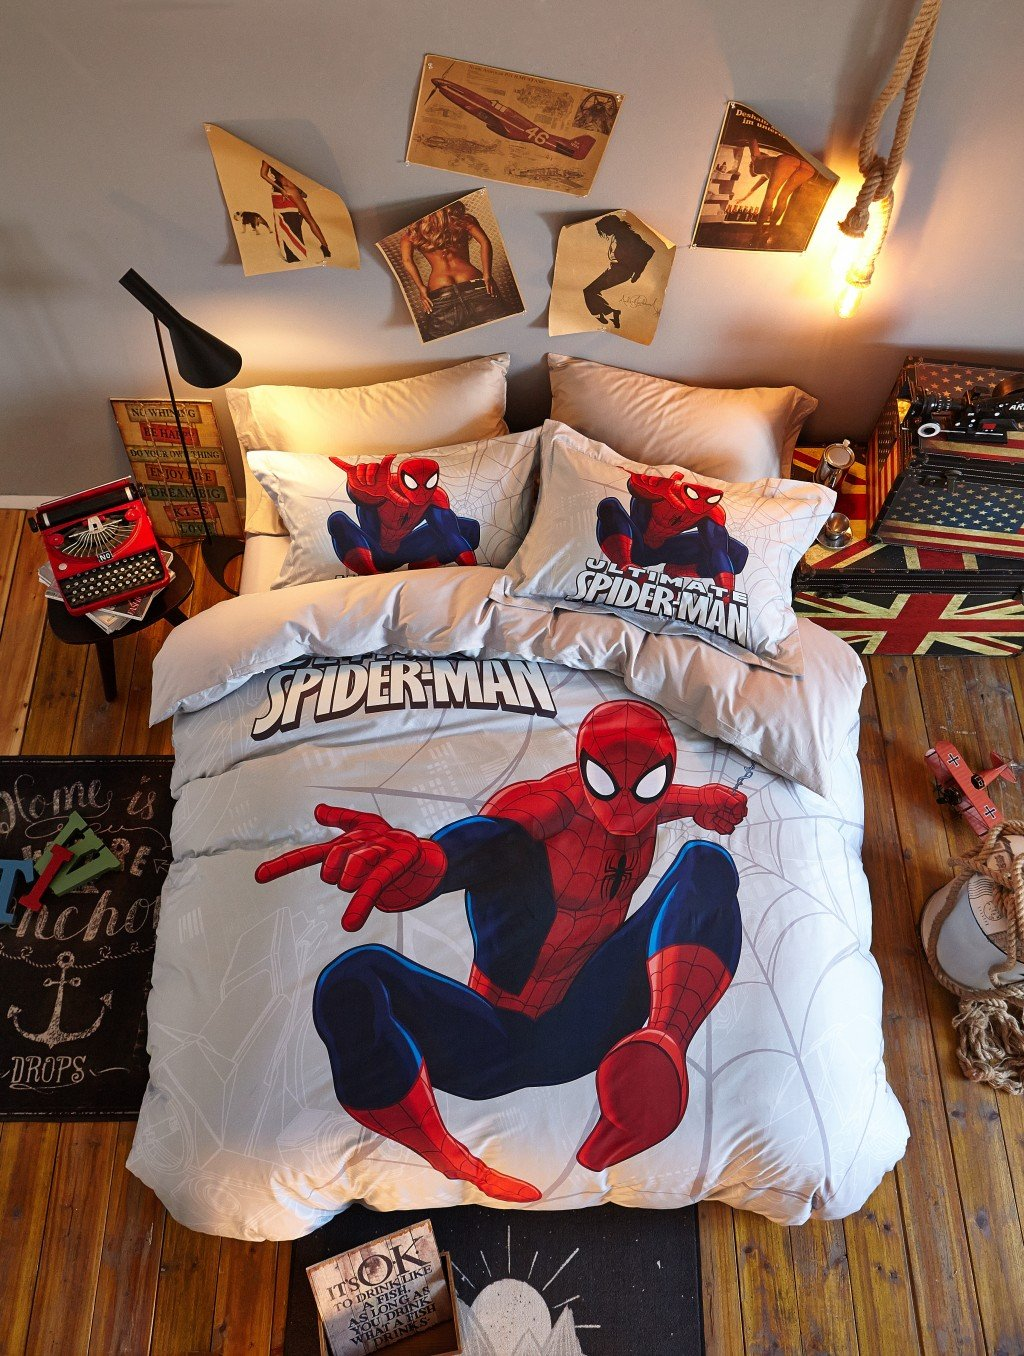 Haru Homie Luxurious 100% Cotton Duvet Cover 3D Spiderman Kids Reversible Bedding Set With Zipper Closure - Comfortable, Fade Resistant and Extremely Durable, Full/Queen